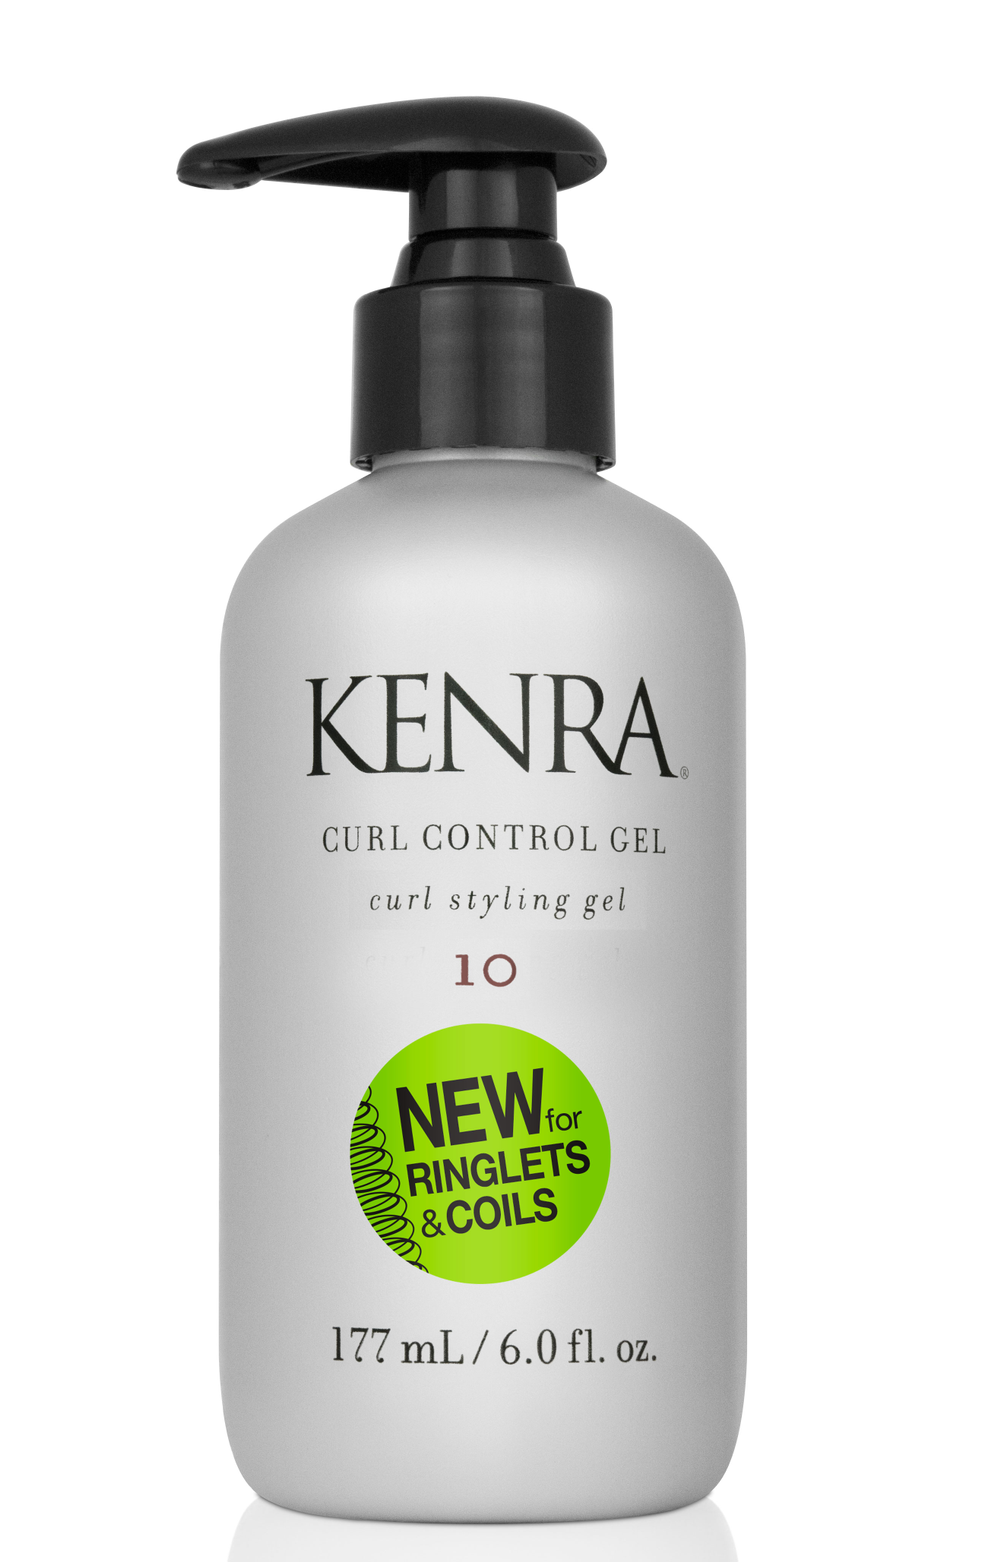 New Kenra Curl Control Gel for styling ringlets and coils